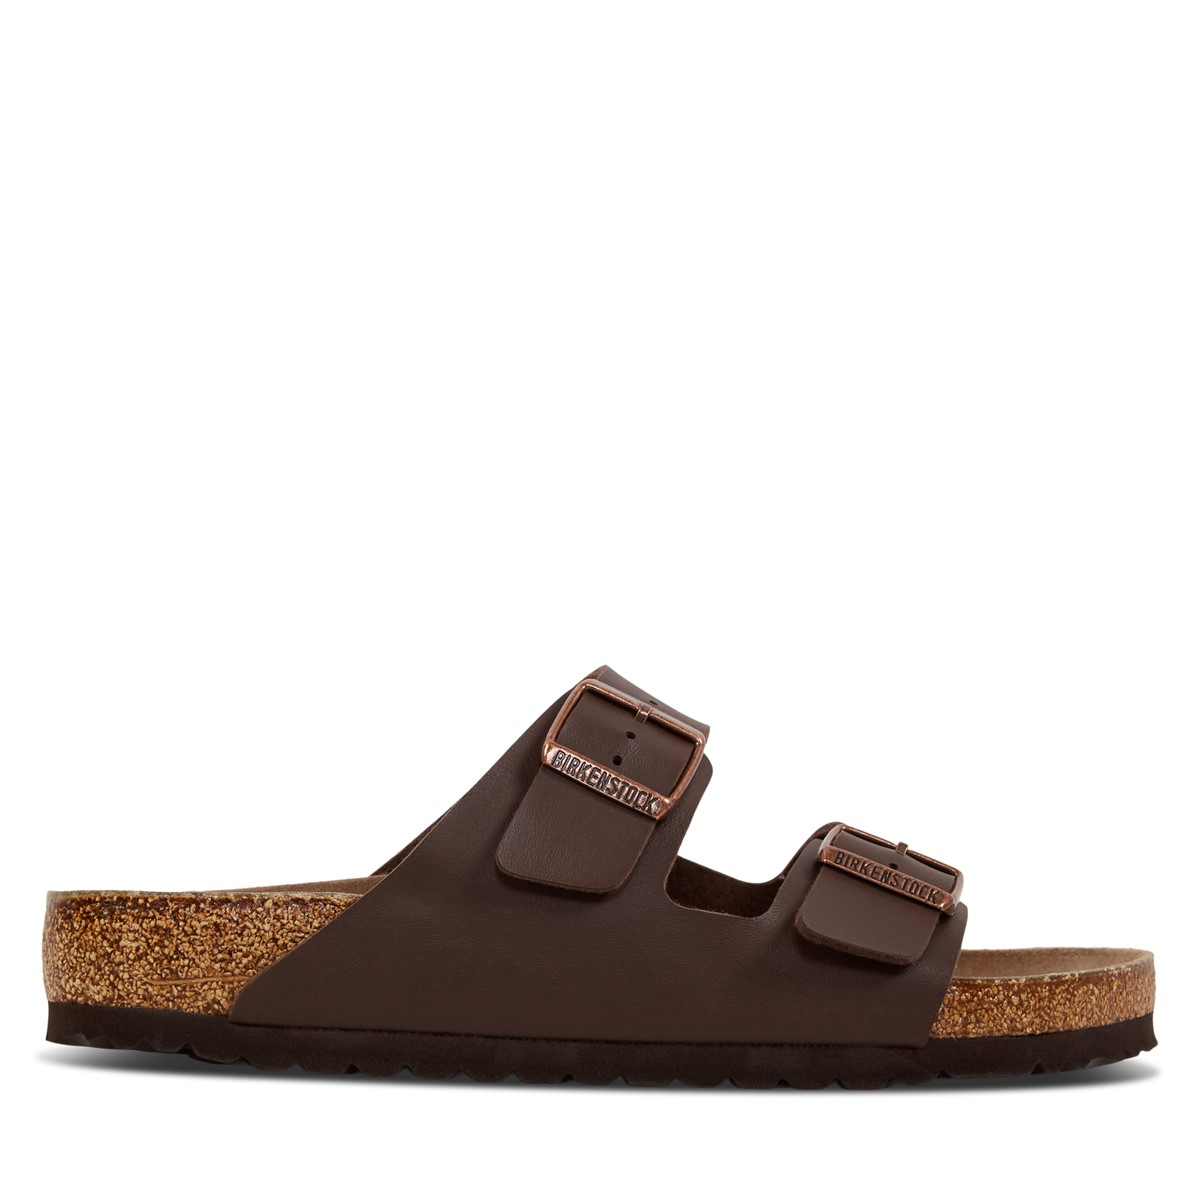 Men's Arizona Sandals in Brown